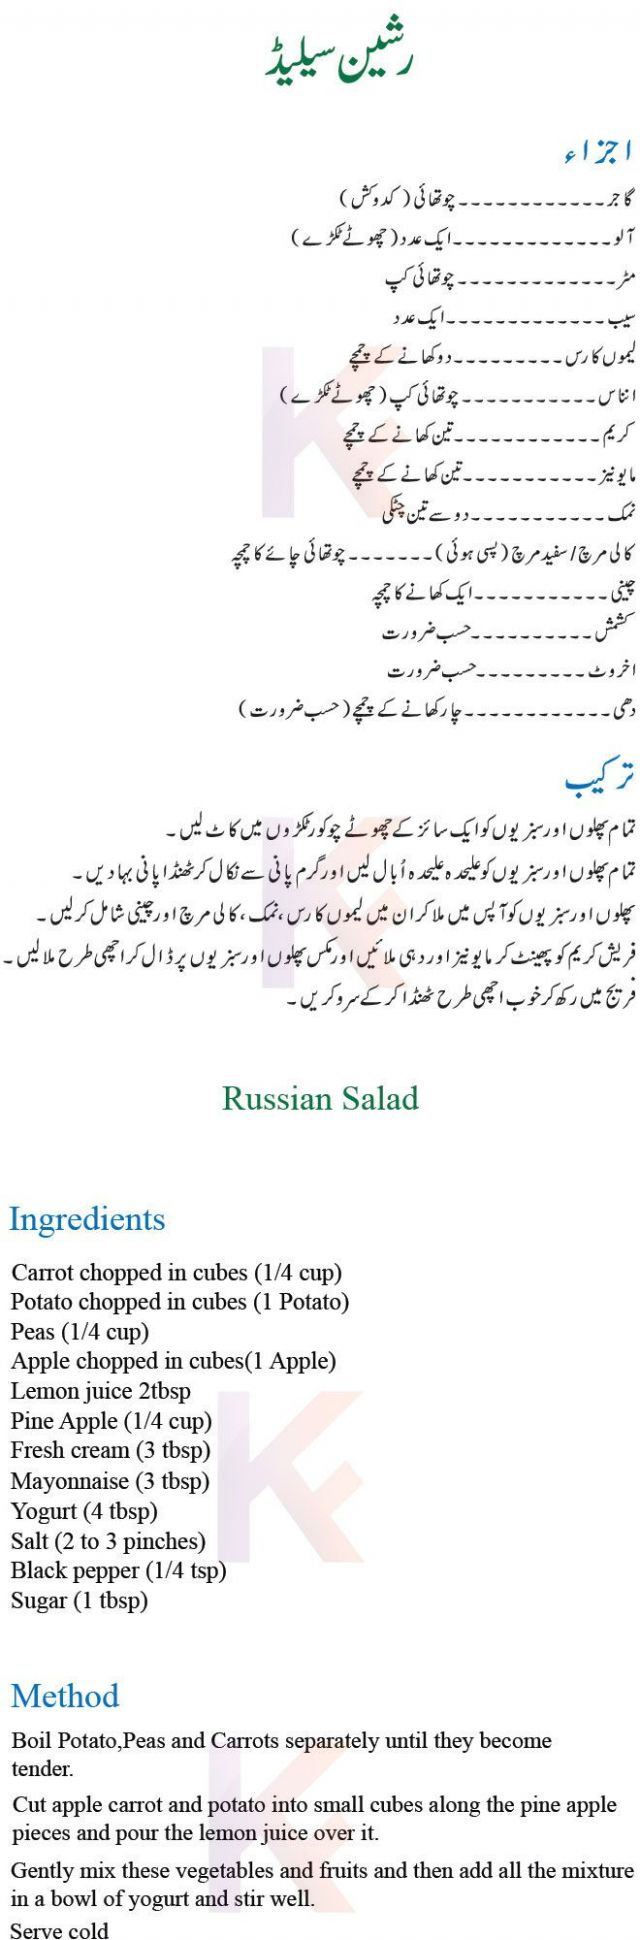 Russian Salad Step by Step Recipe | Russian salad recipe, Salad ..